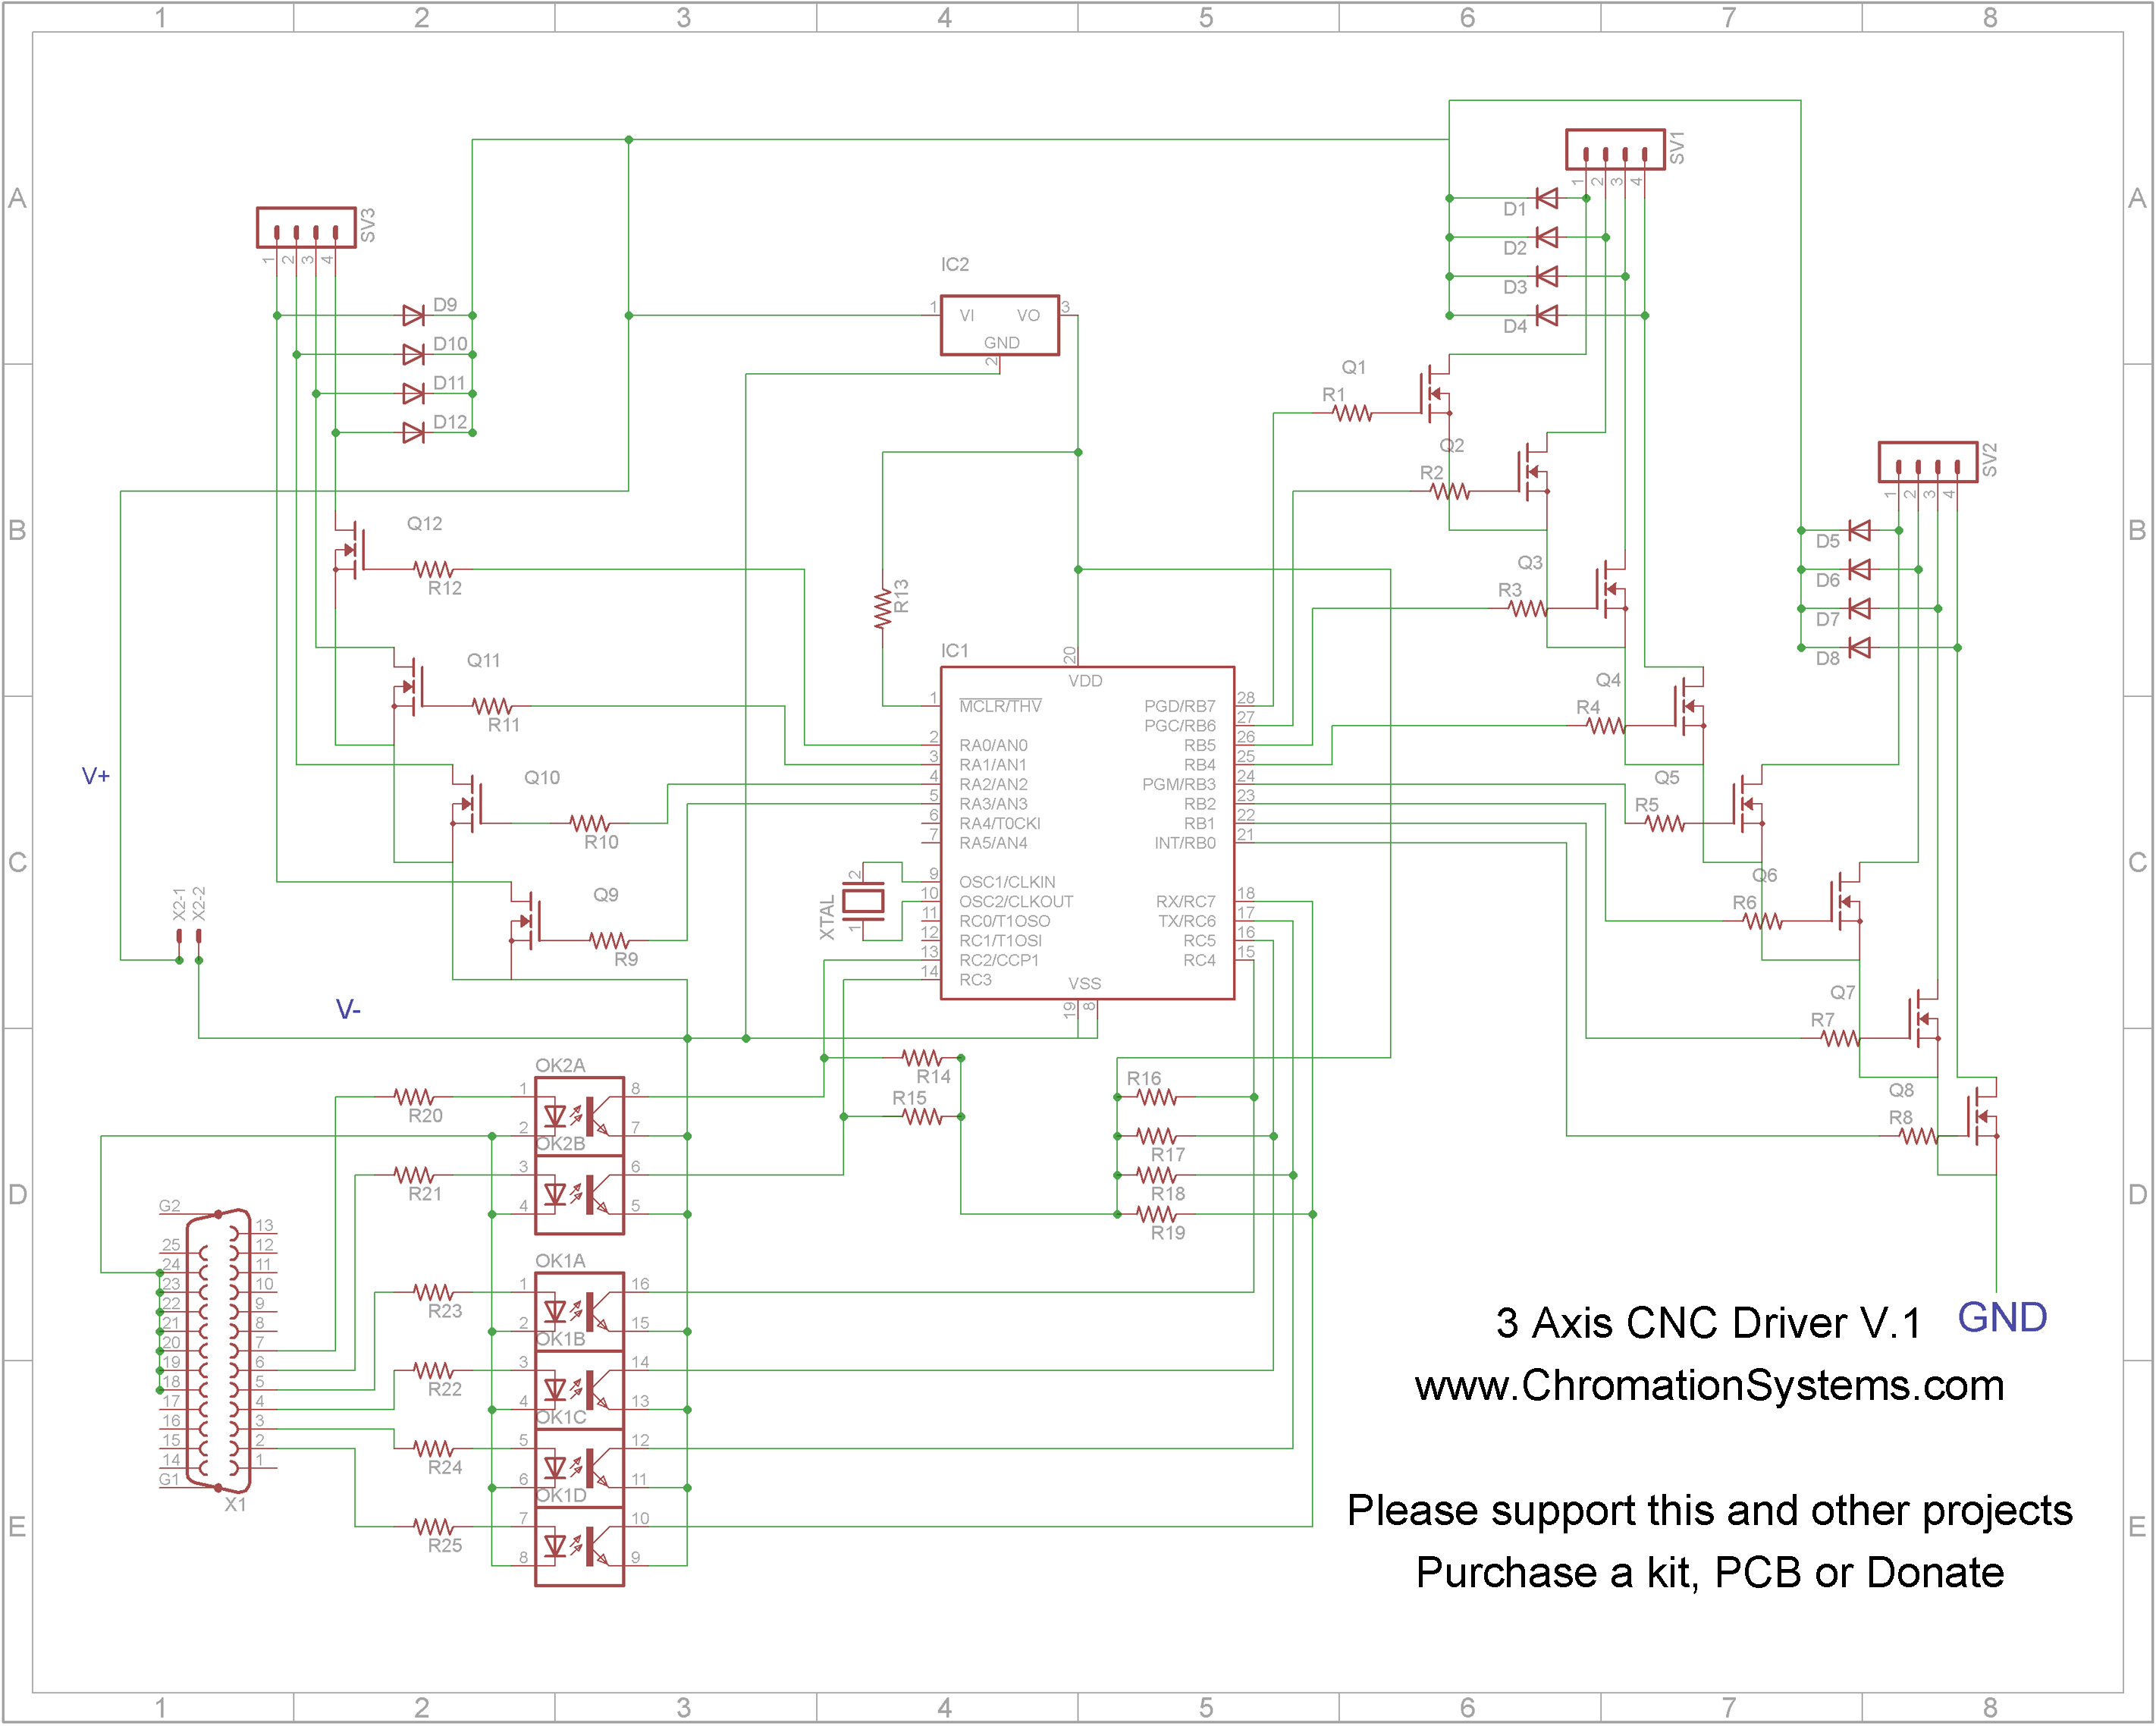 CNC_driver_v1_schematic.png